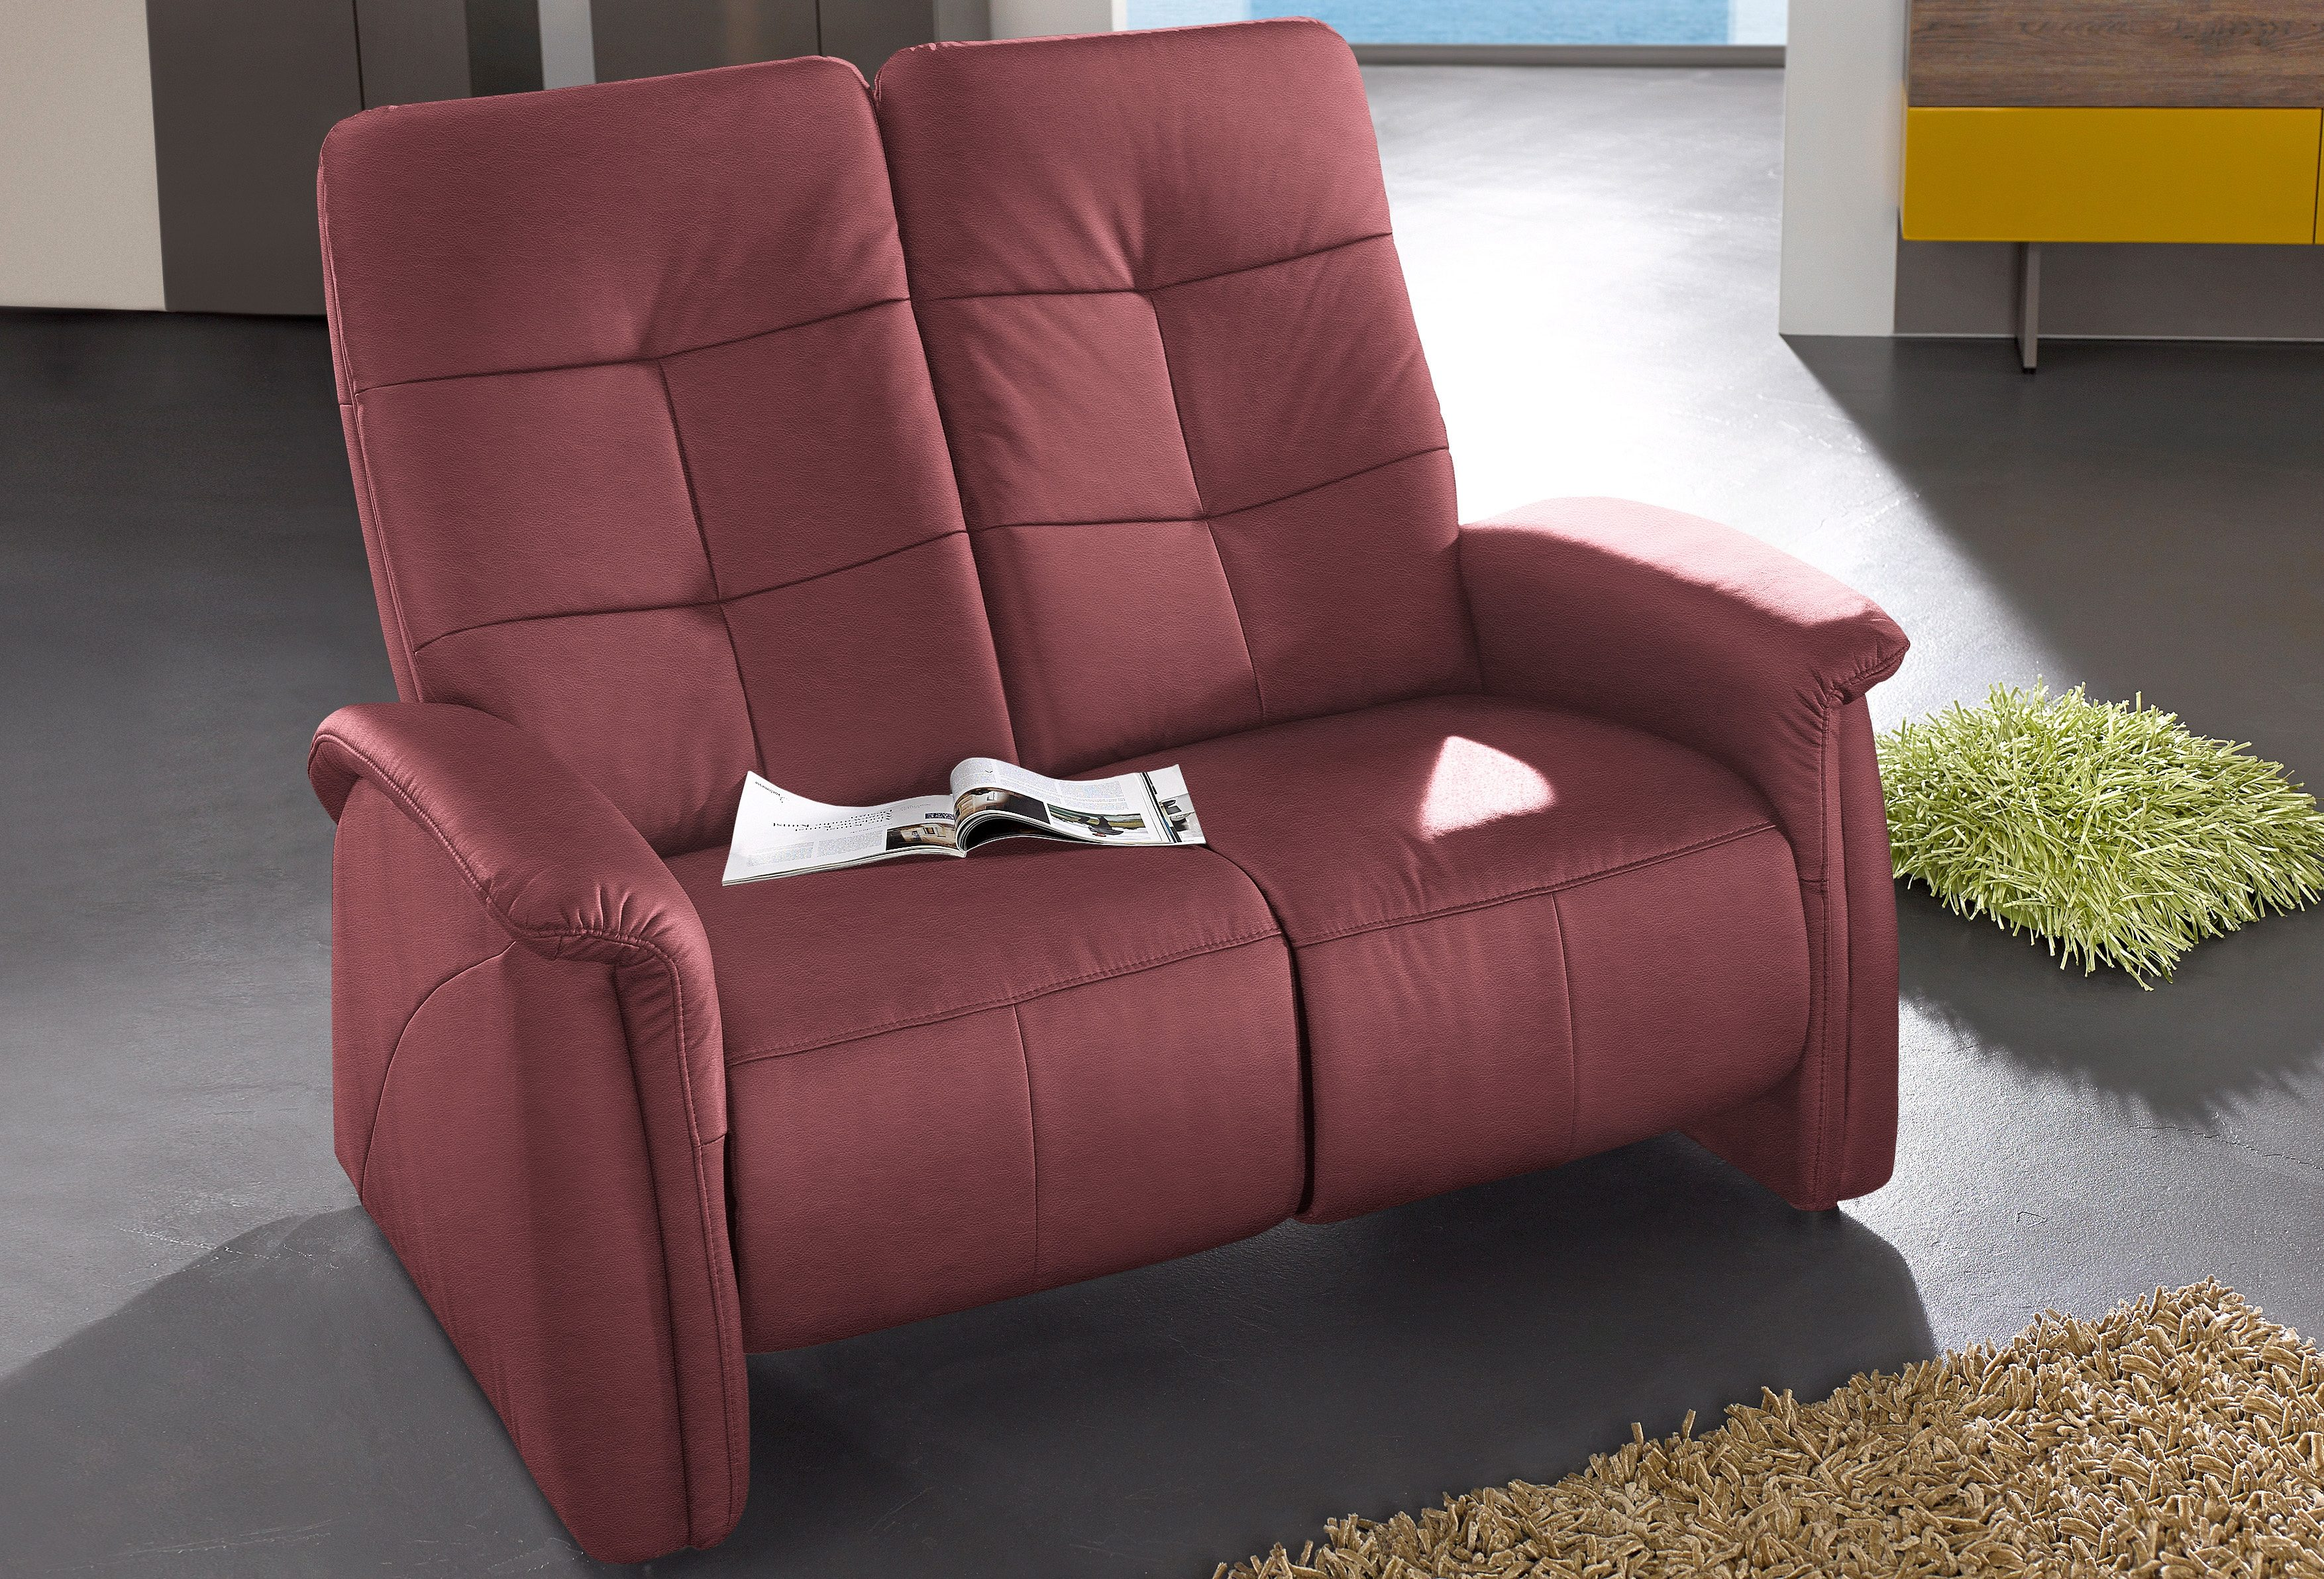 Image of 2-Sitzer, City Sofa, mit Relaxfunktion